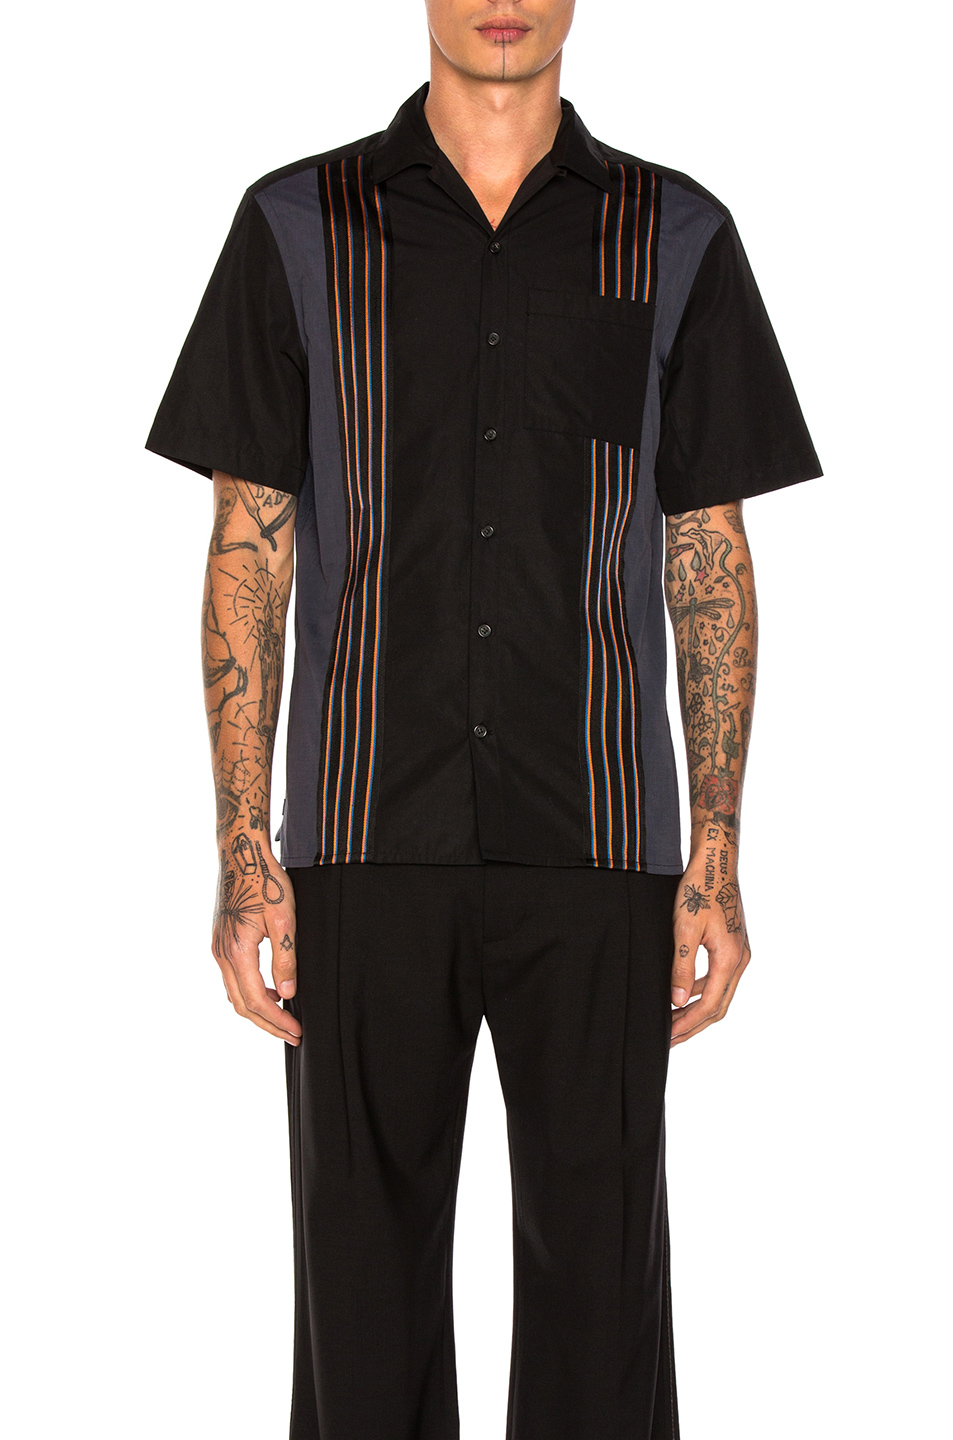 Lanvin Striped Bowling Shirt in Stripes,Black